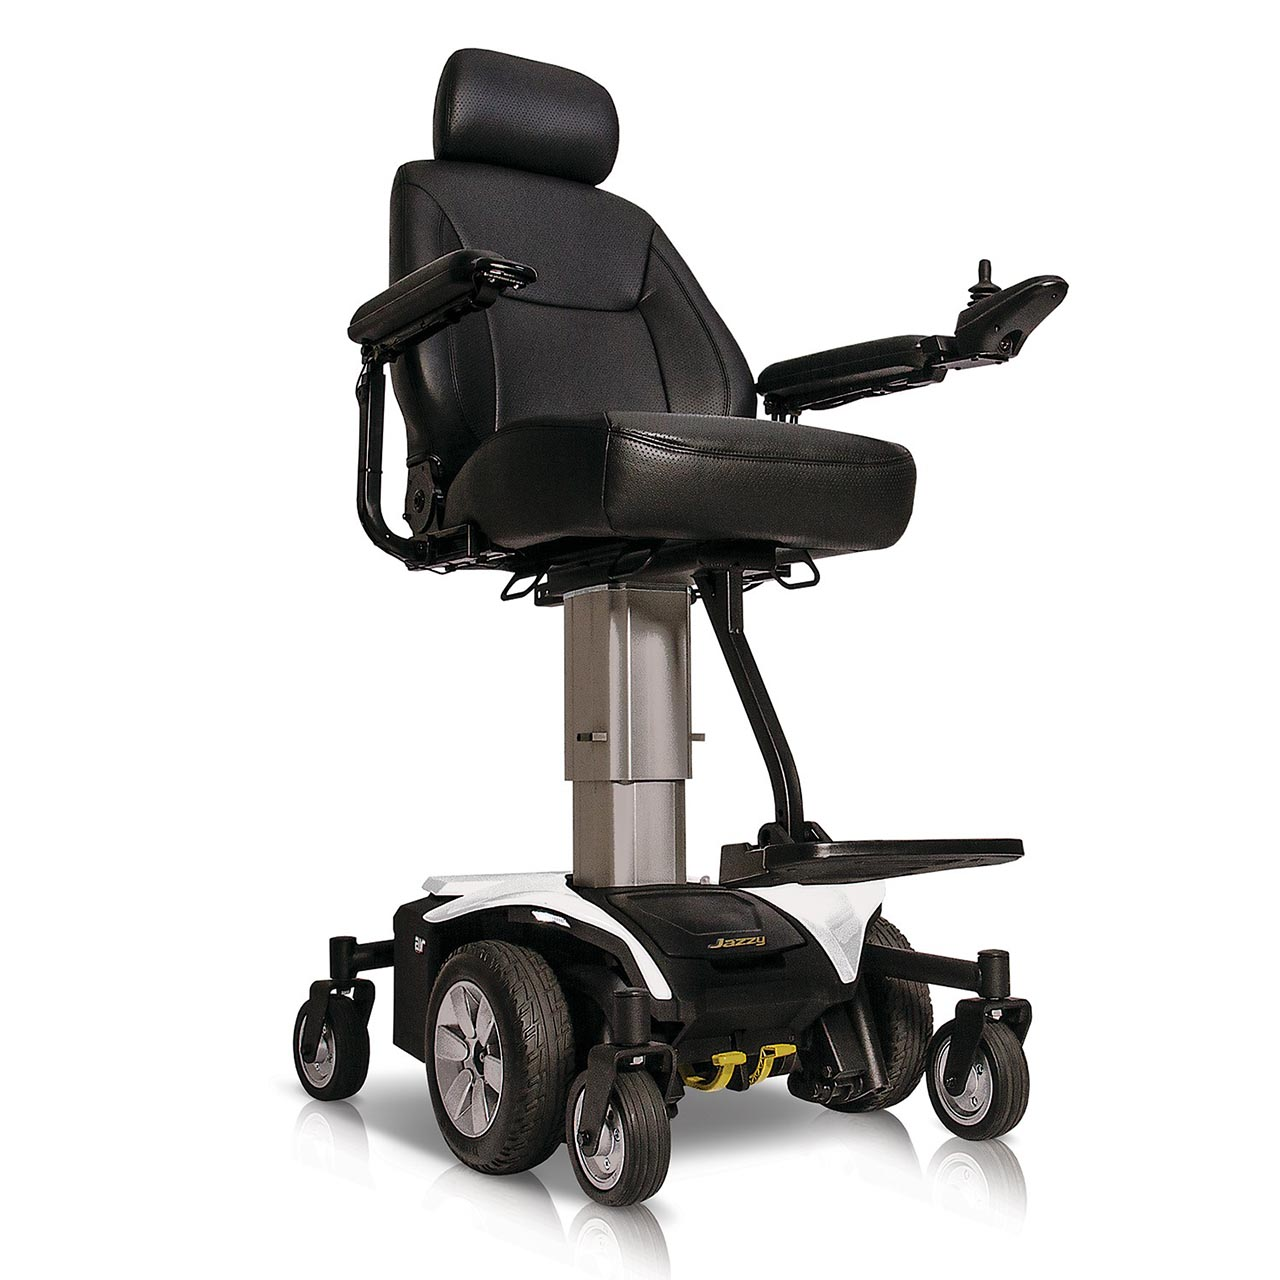 power chairs for sale restaurant table and suppliers pride jazzy air powerchair electirc wheelchair hire or